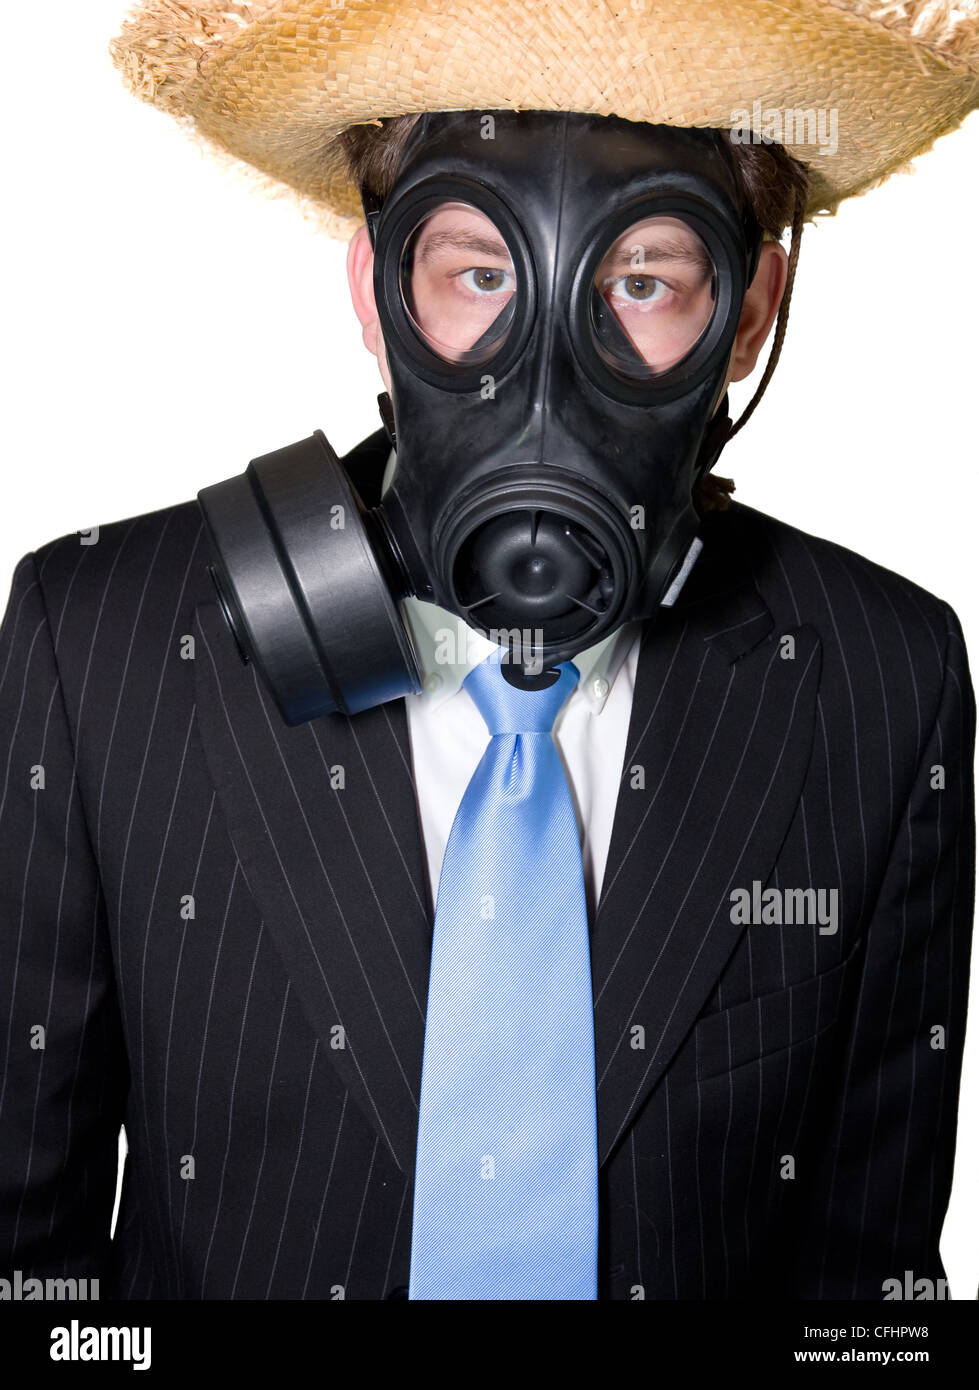 Picture of a man in suit with a gasmask and a hat - Stock Image